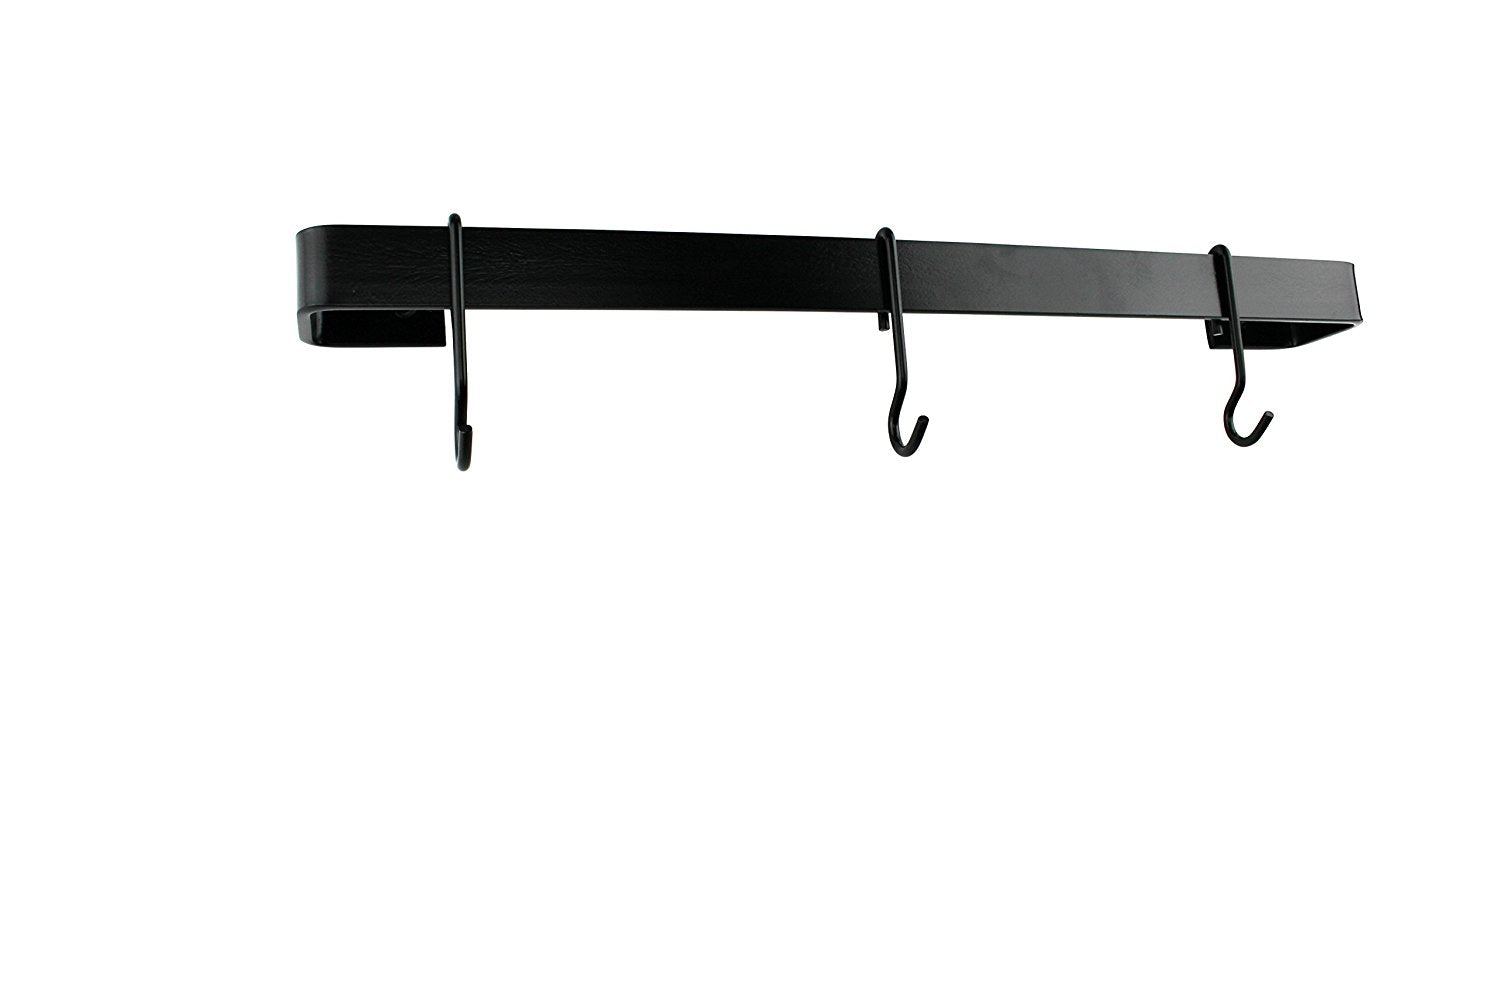 "24"" Classic Wall Rack Utensil Bar With 6 Hooks, Black Steel - Pot Racks Plus"